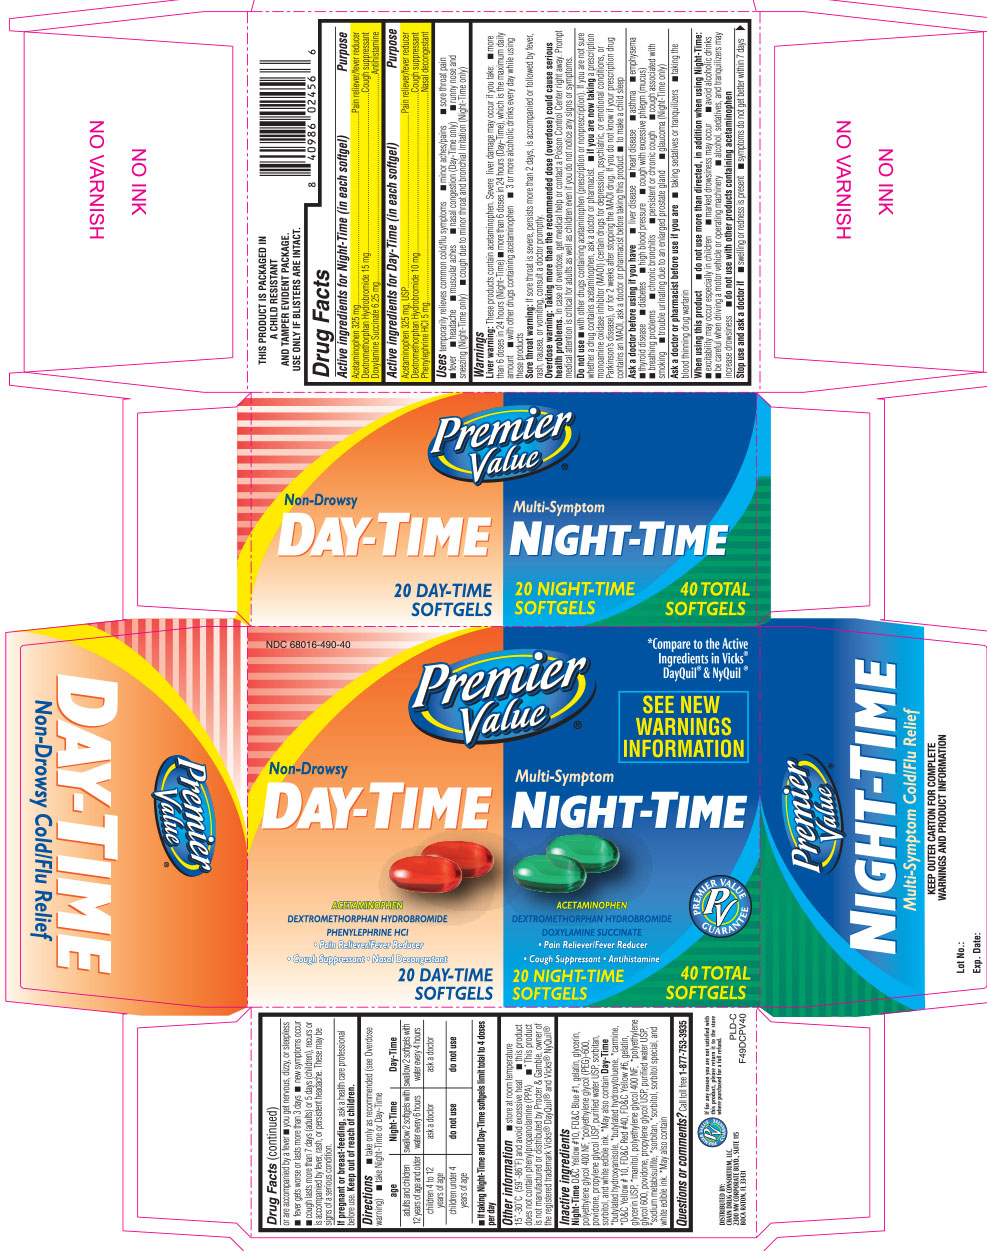 Premier value day-time night-time softgels 40 count